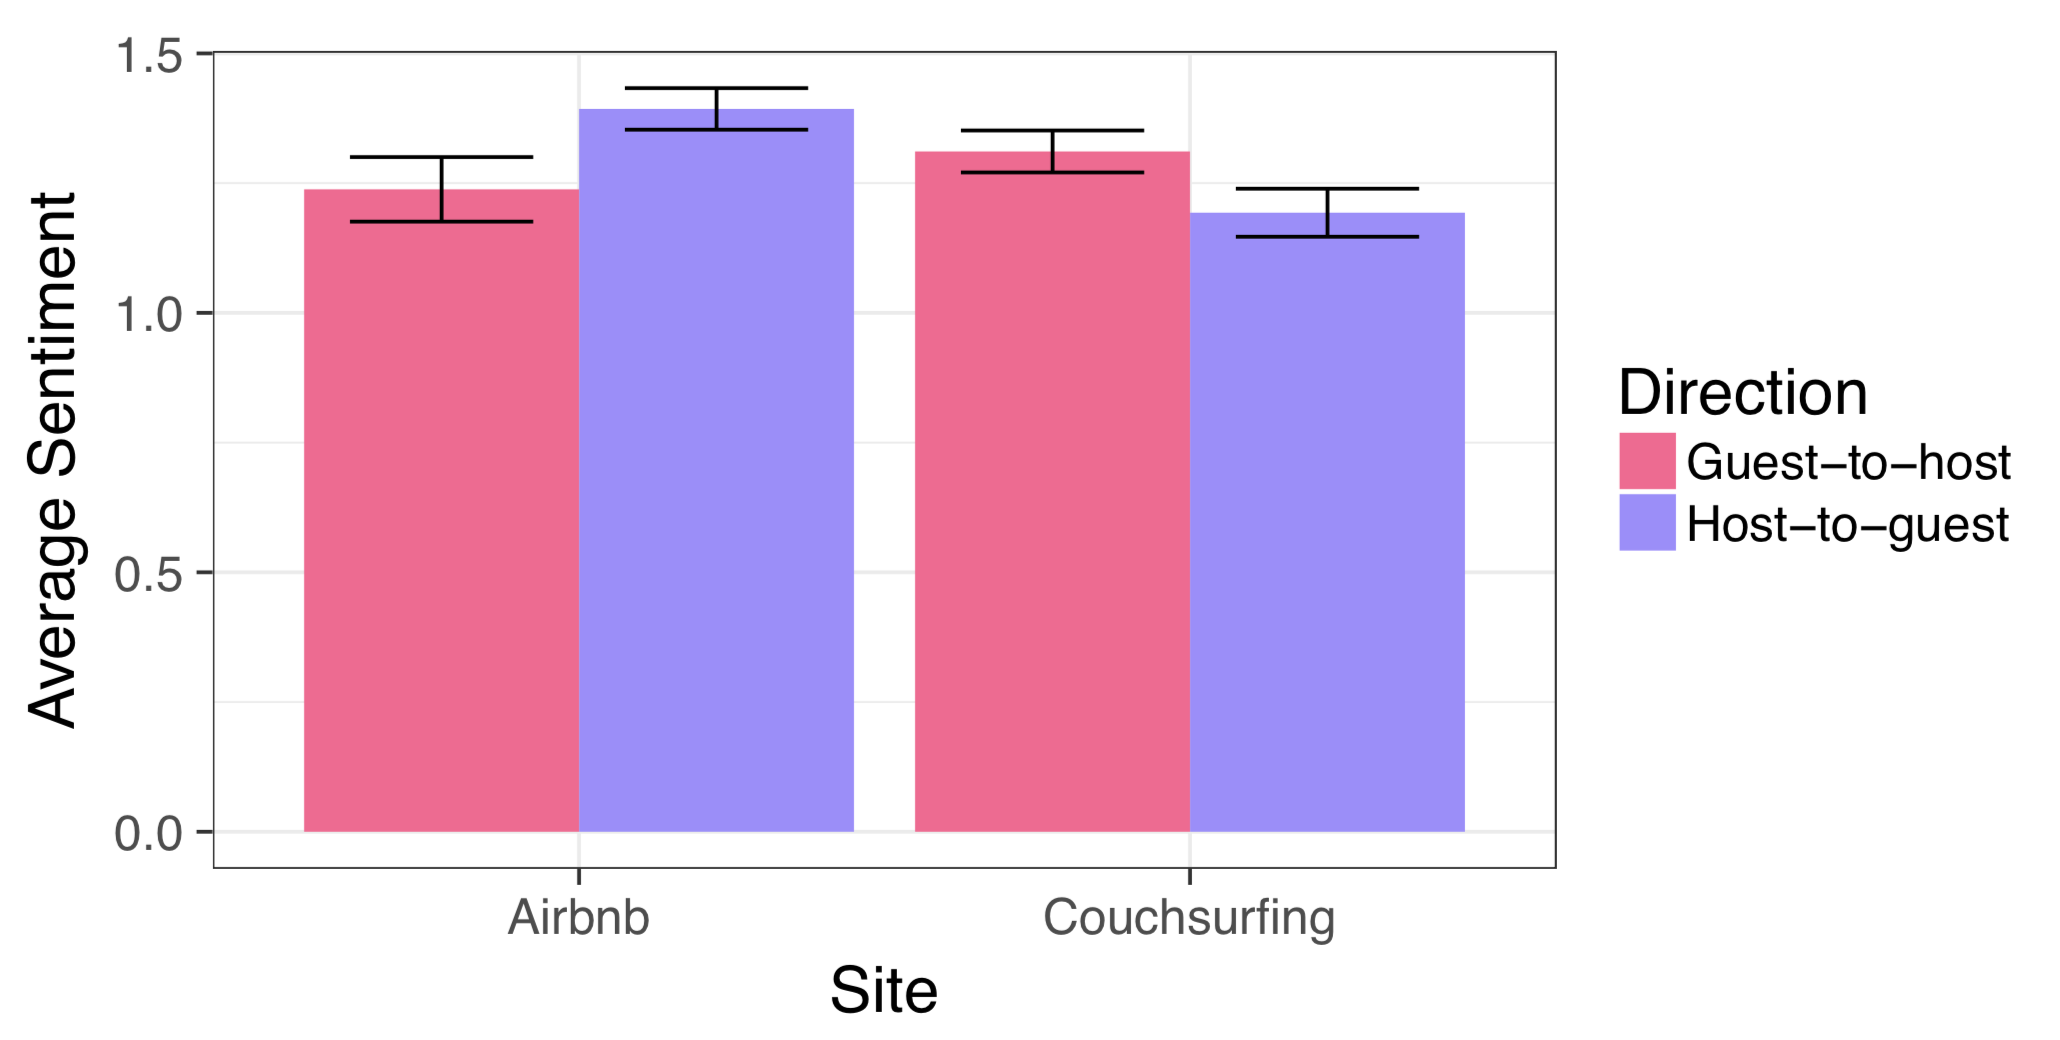 What Users of Couchsurfing and Airbnb Can Tell Us about Online Room